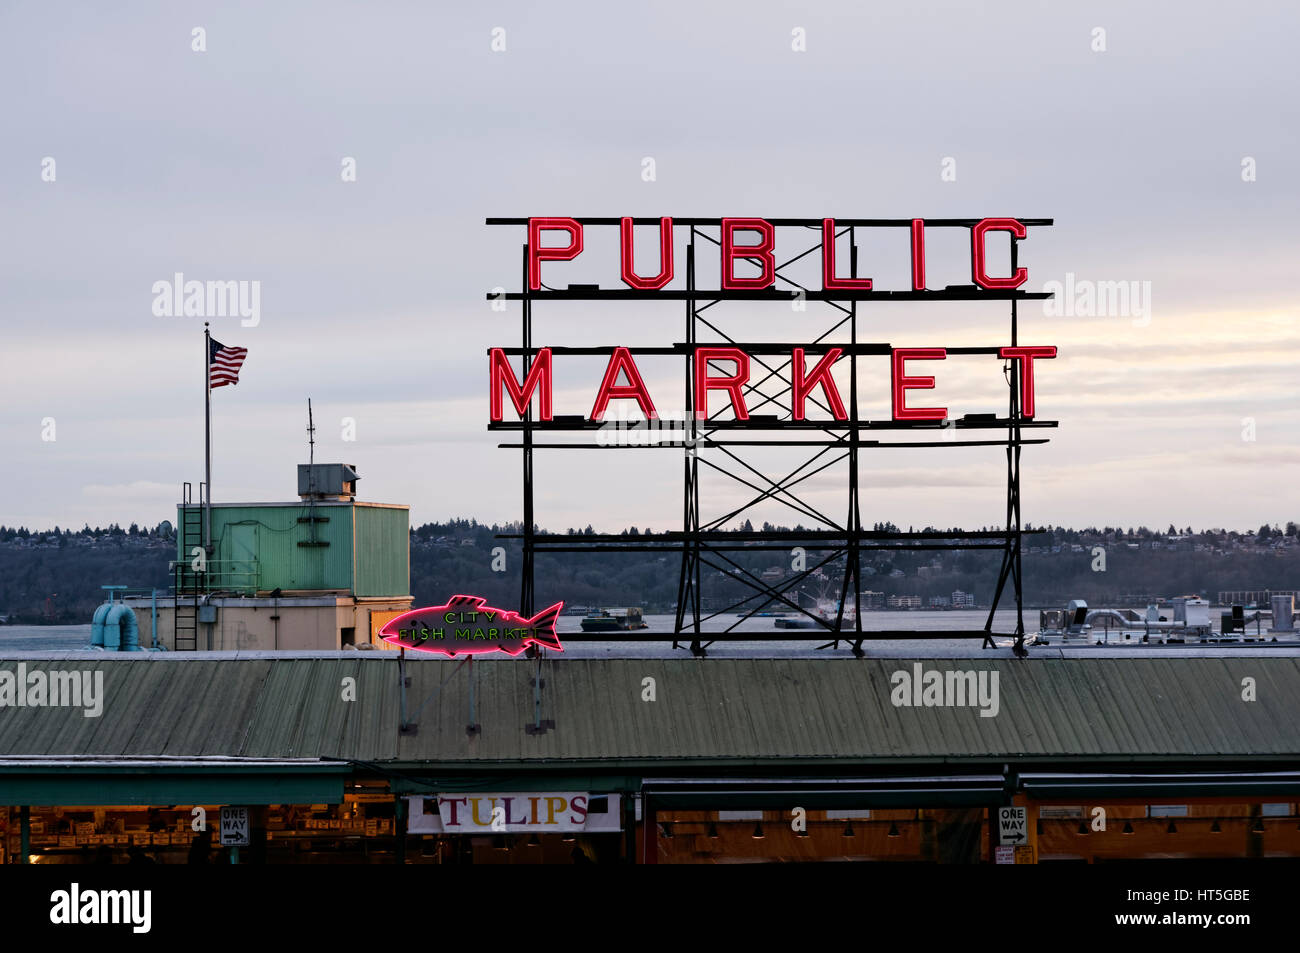 Pike Place Public Market and City Fish Market neon signs at dusk, Seattle, Washington state, USA - Stock Image